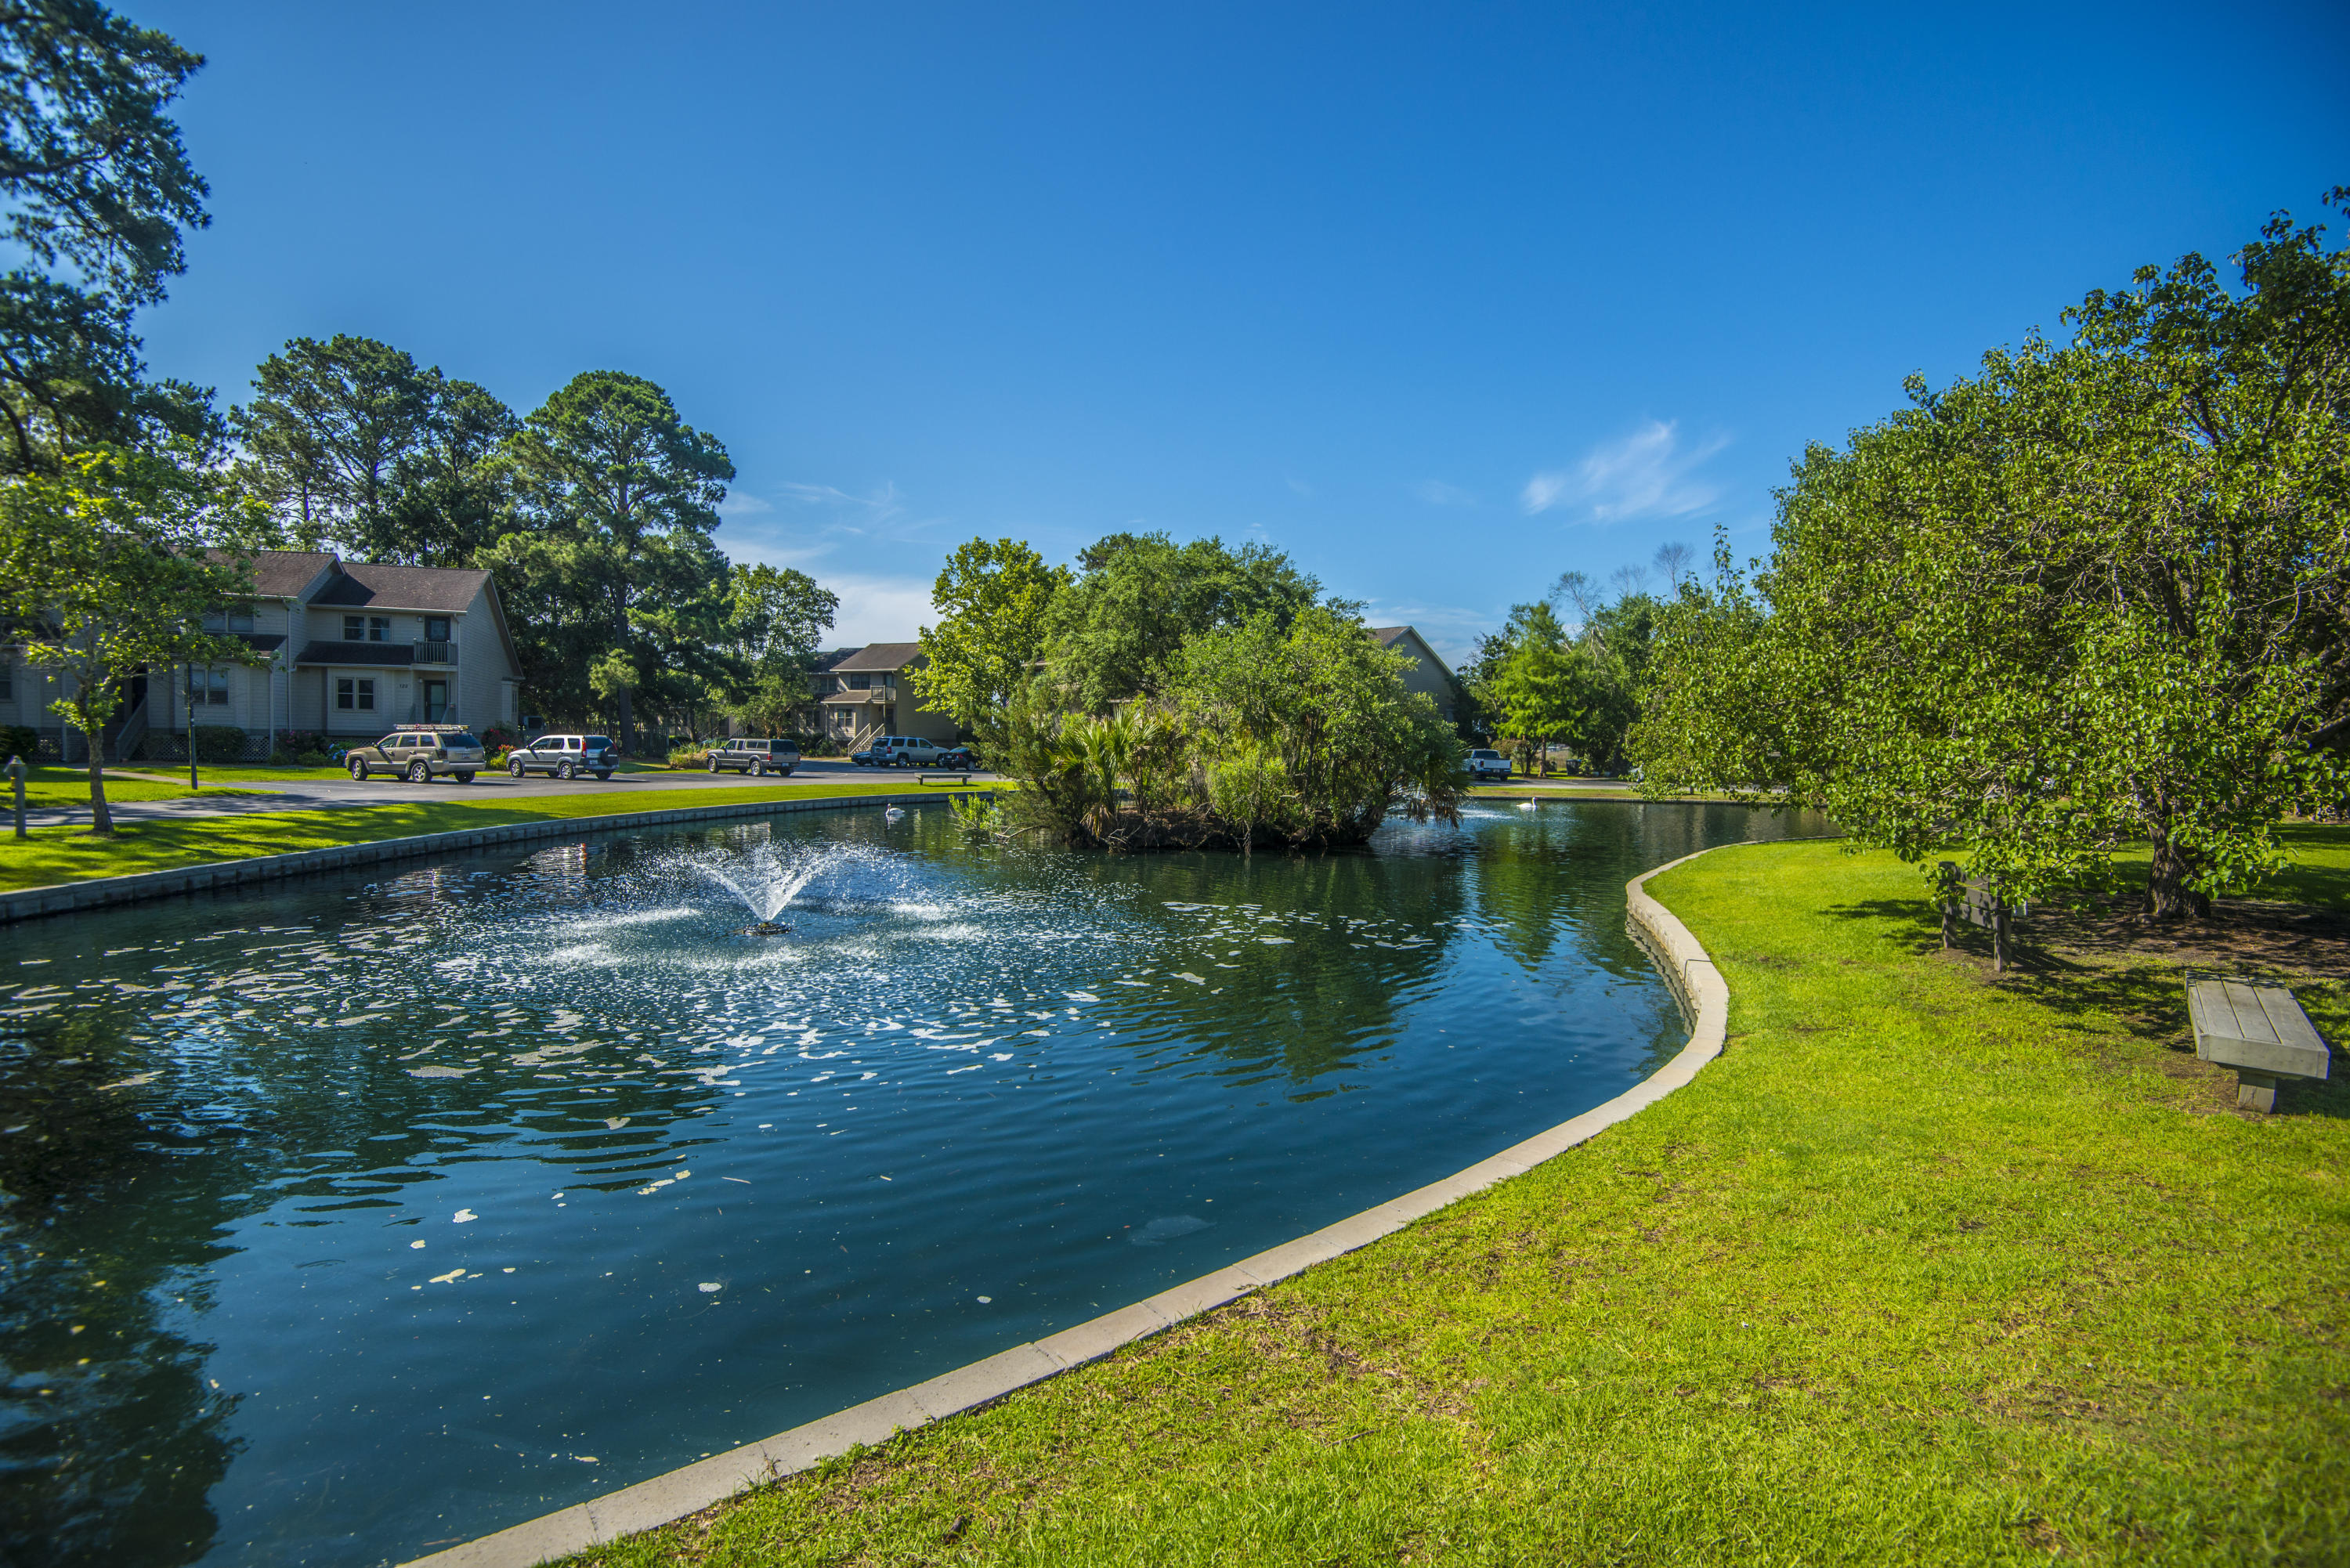 Waterway South Homes For Sale - 153 River Breeze, Charleston, SC - 23